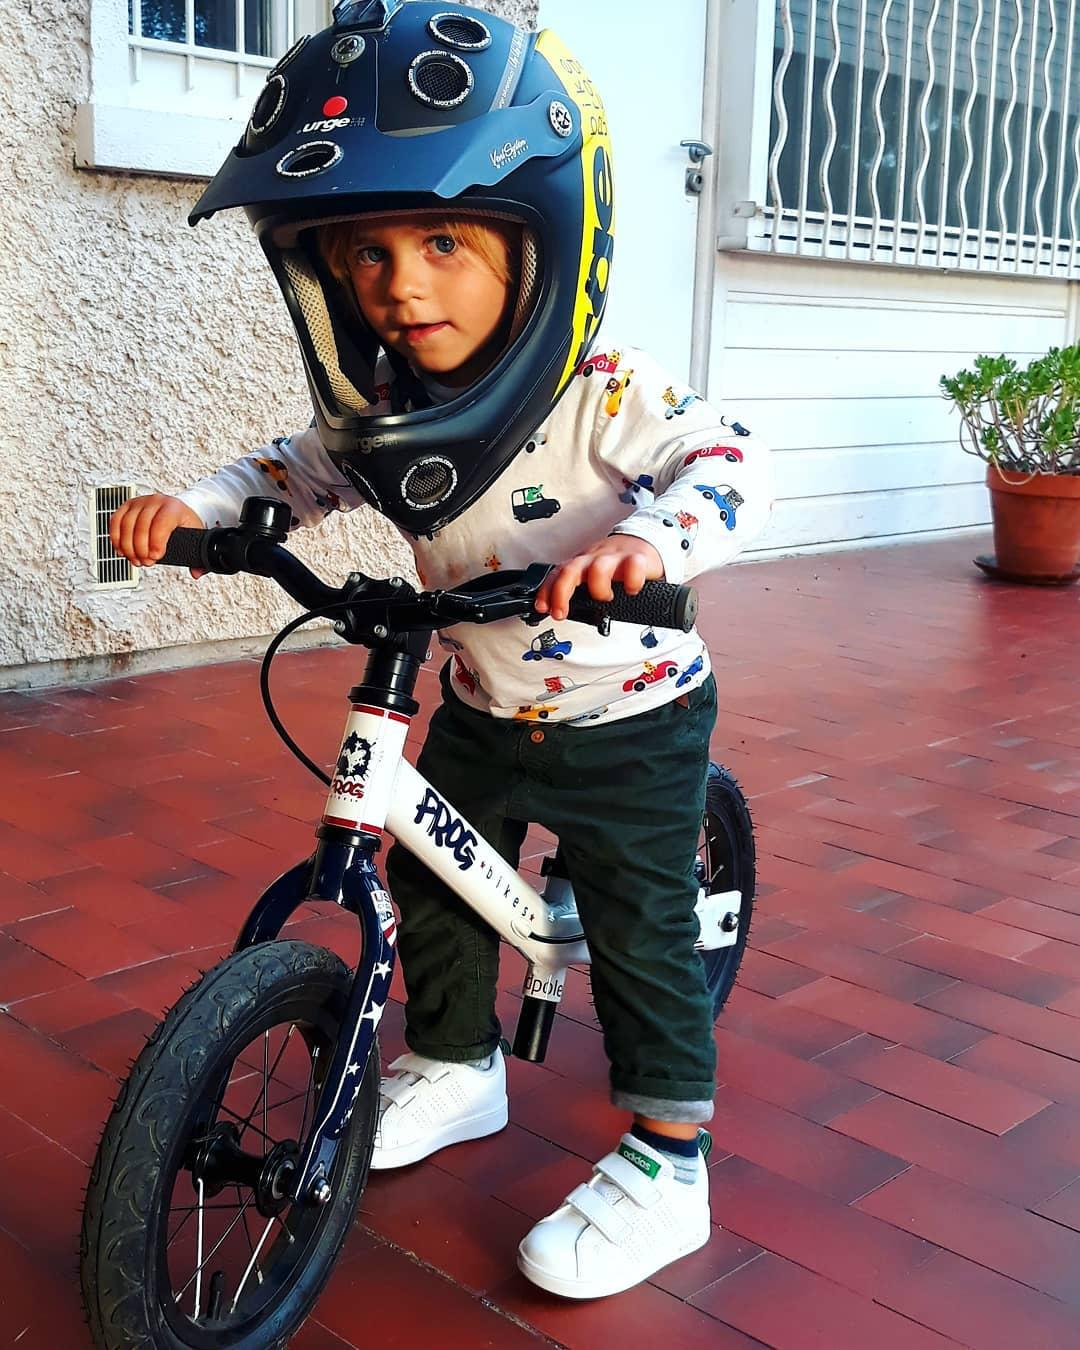 @leonardonbike wearing dads full face helmet